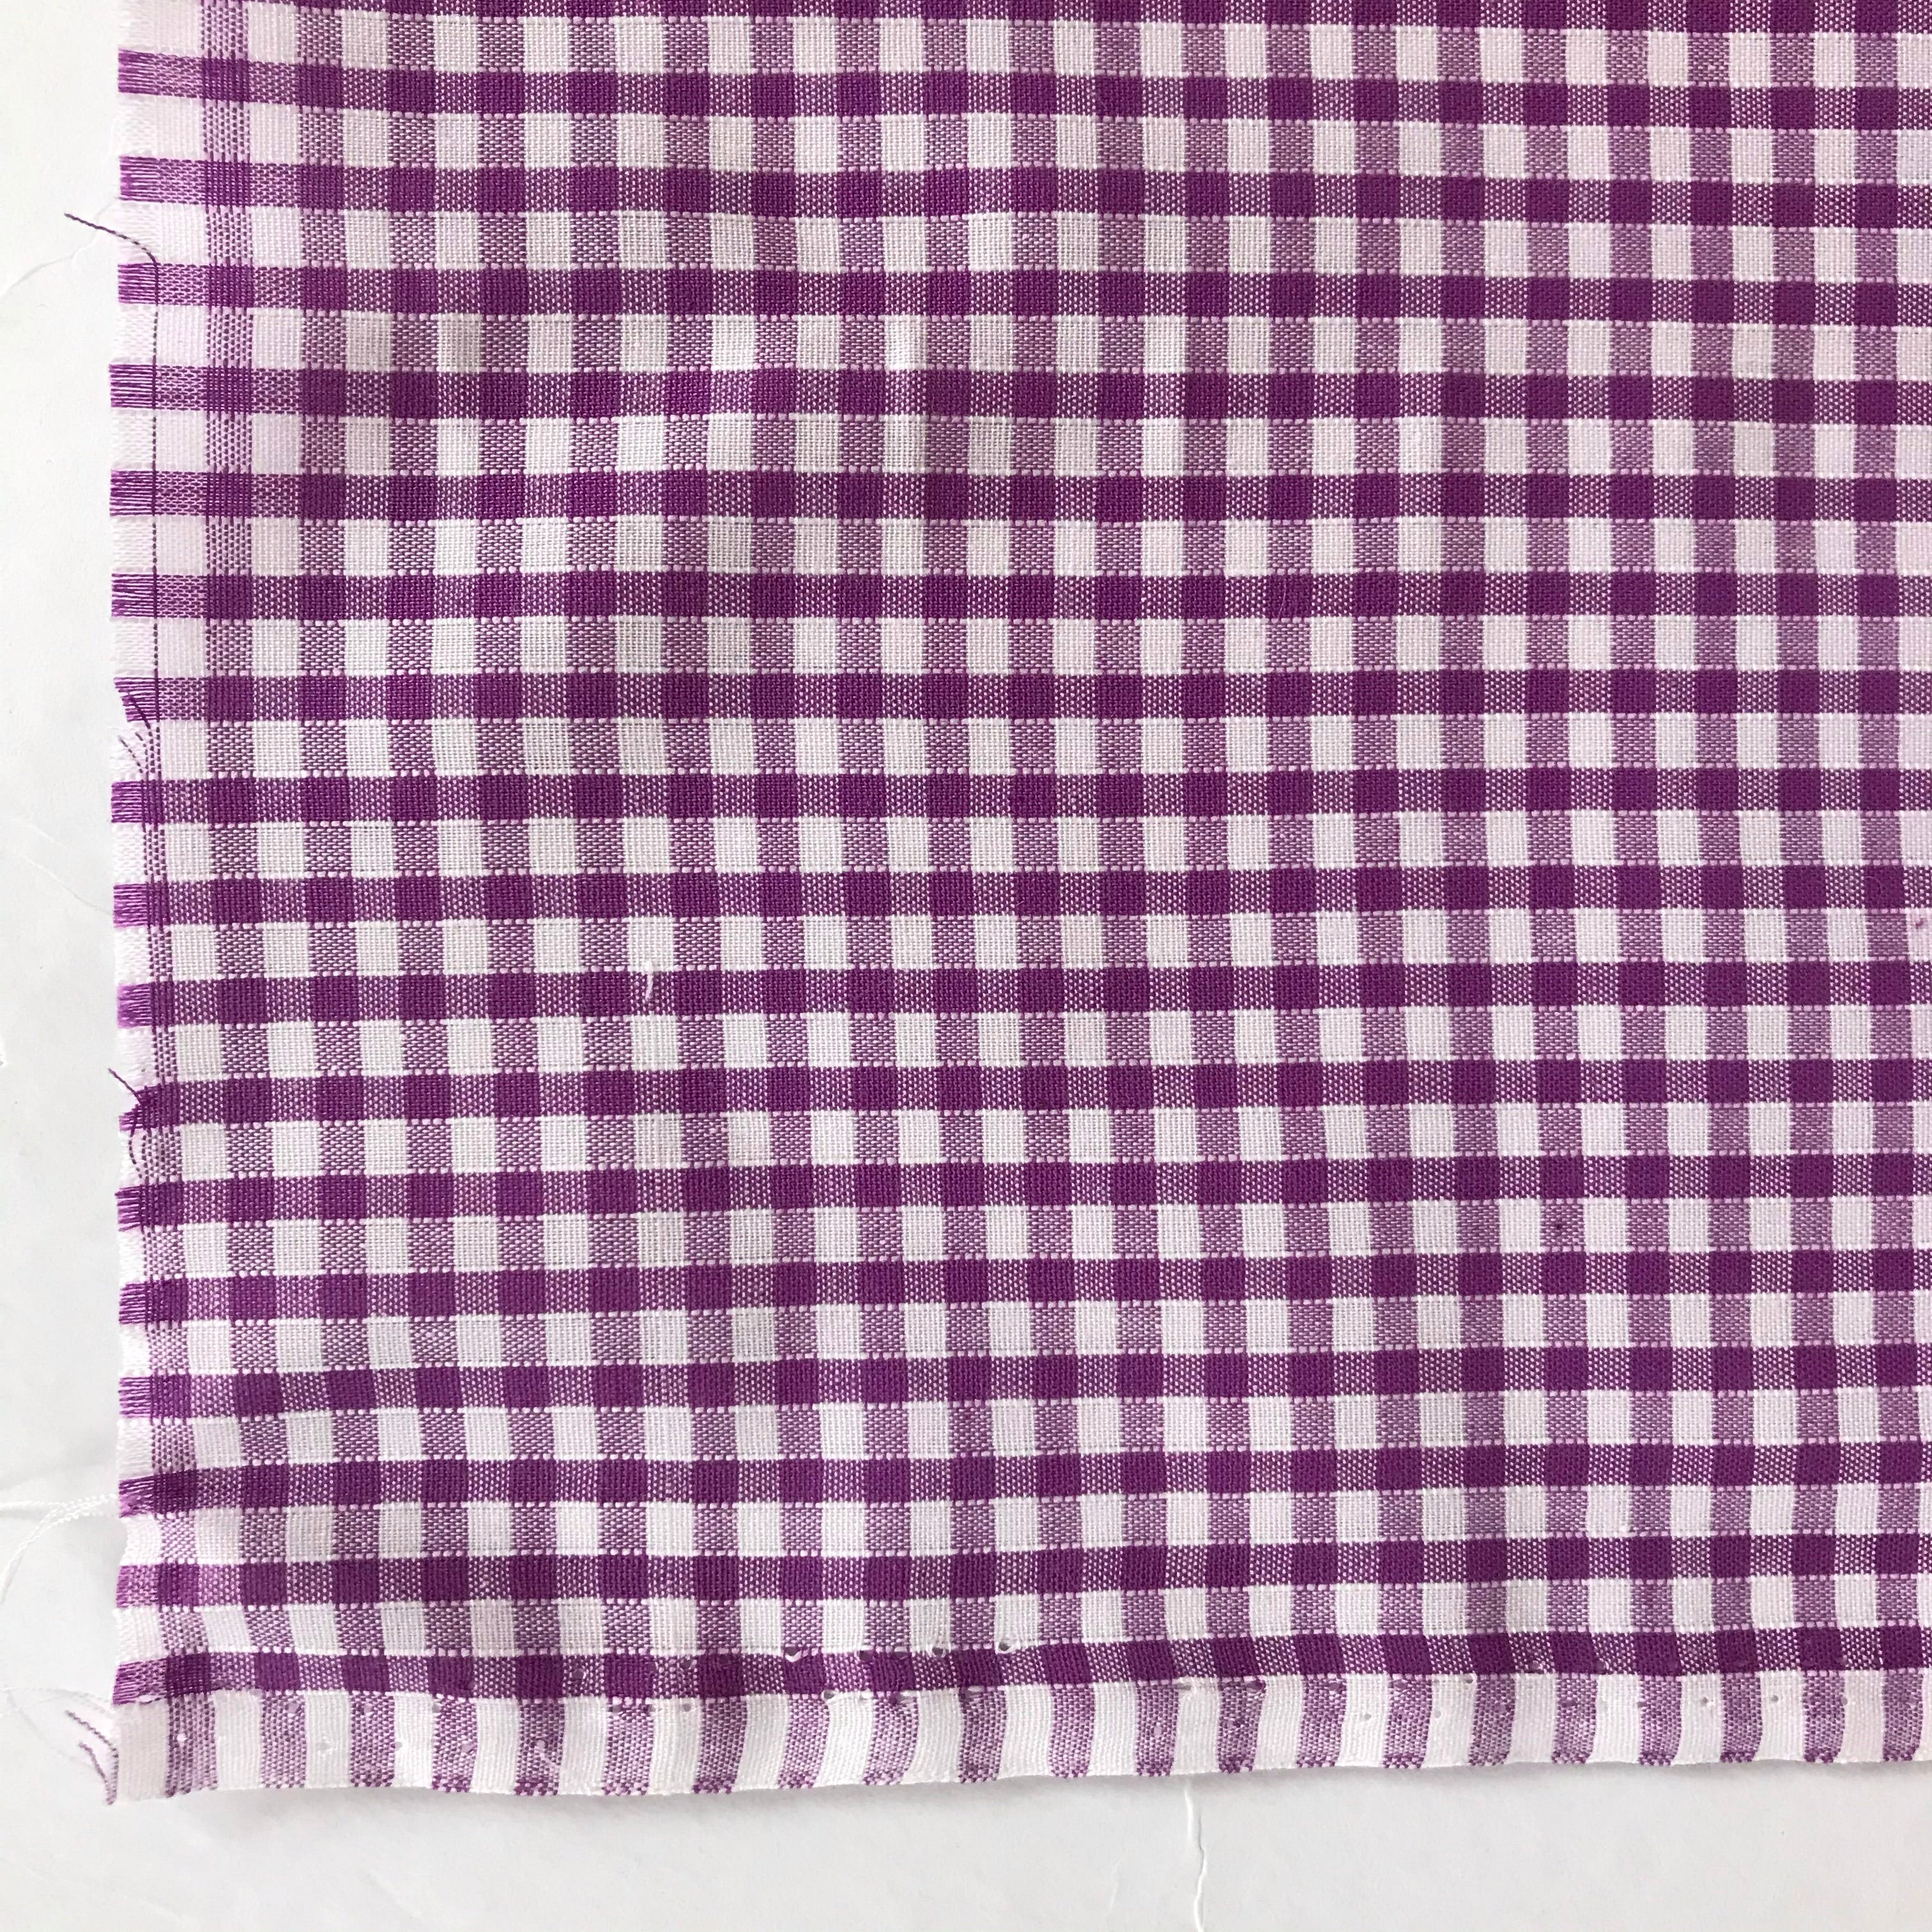 Polycotton 1/8 Gingham in Lilac